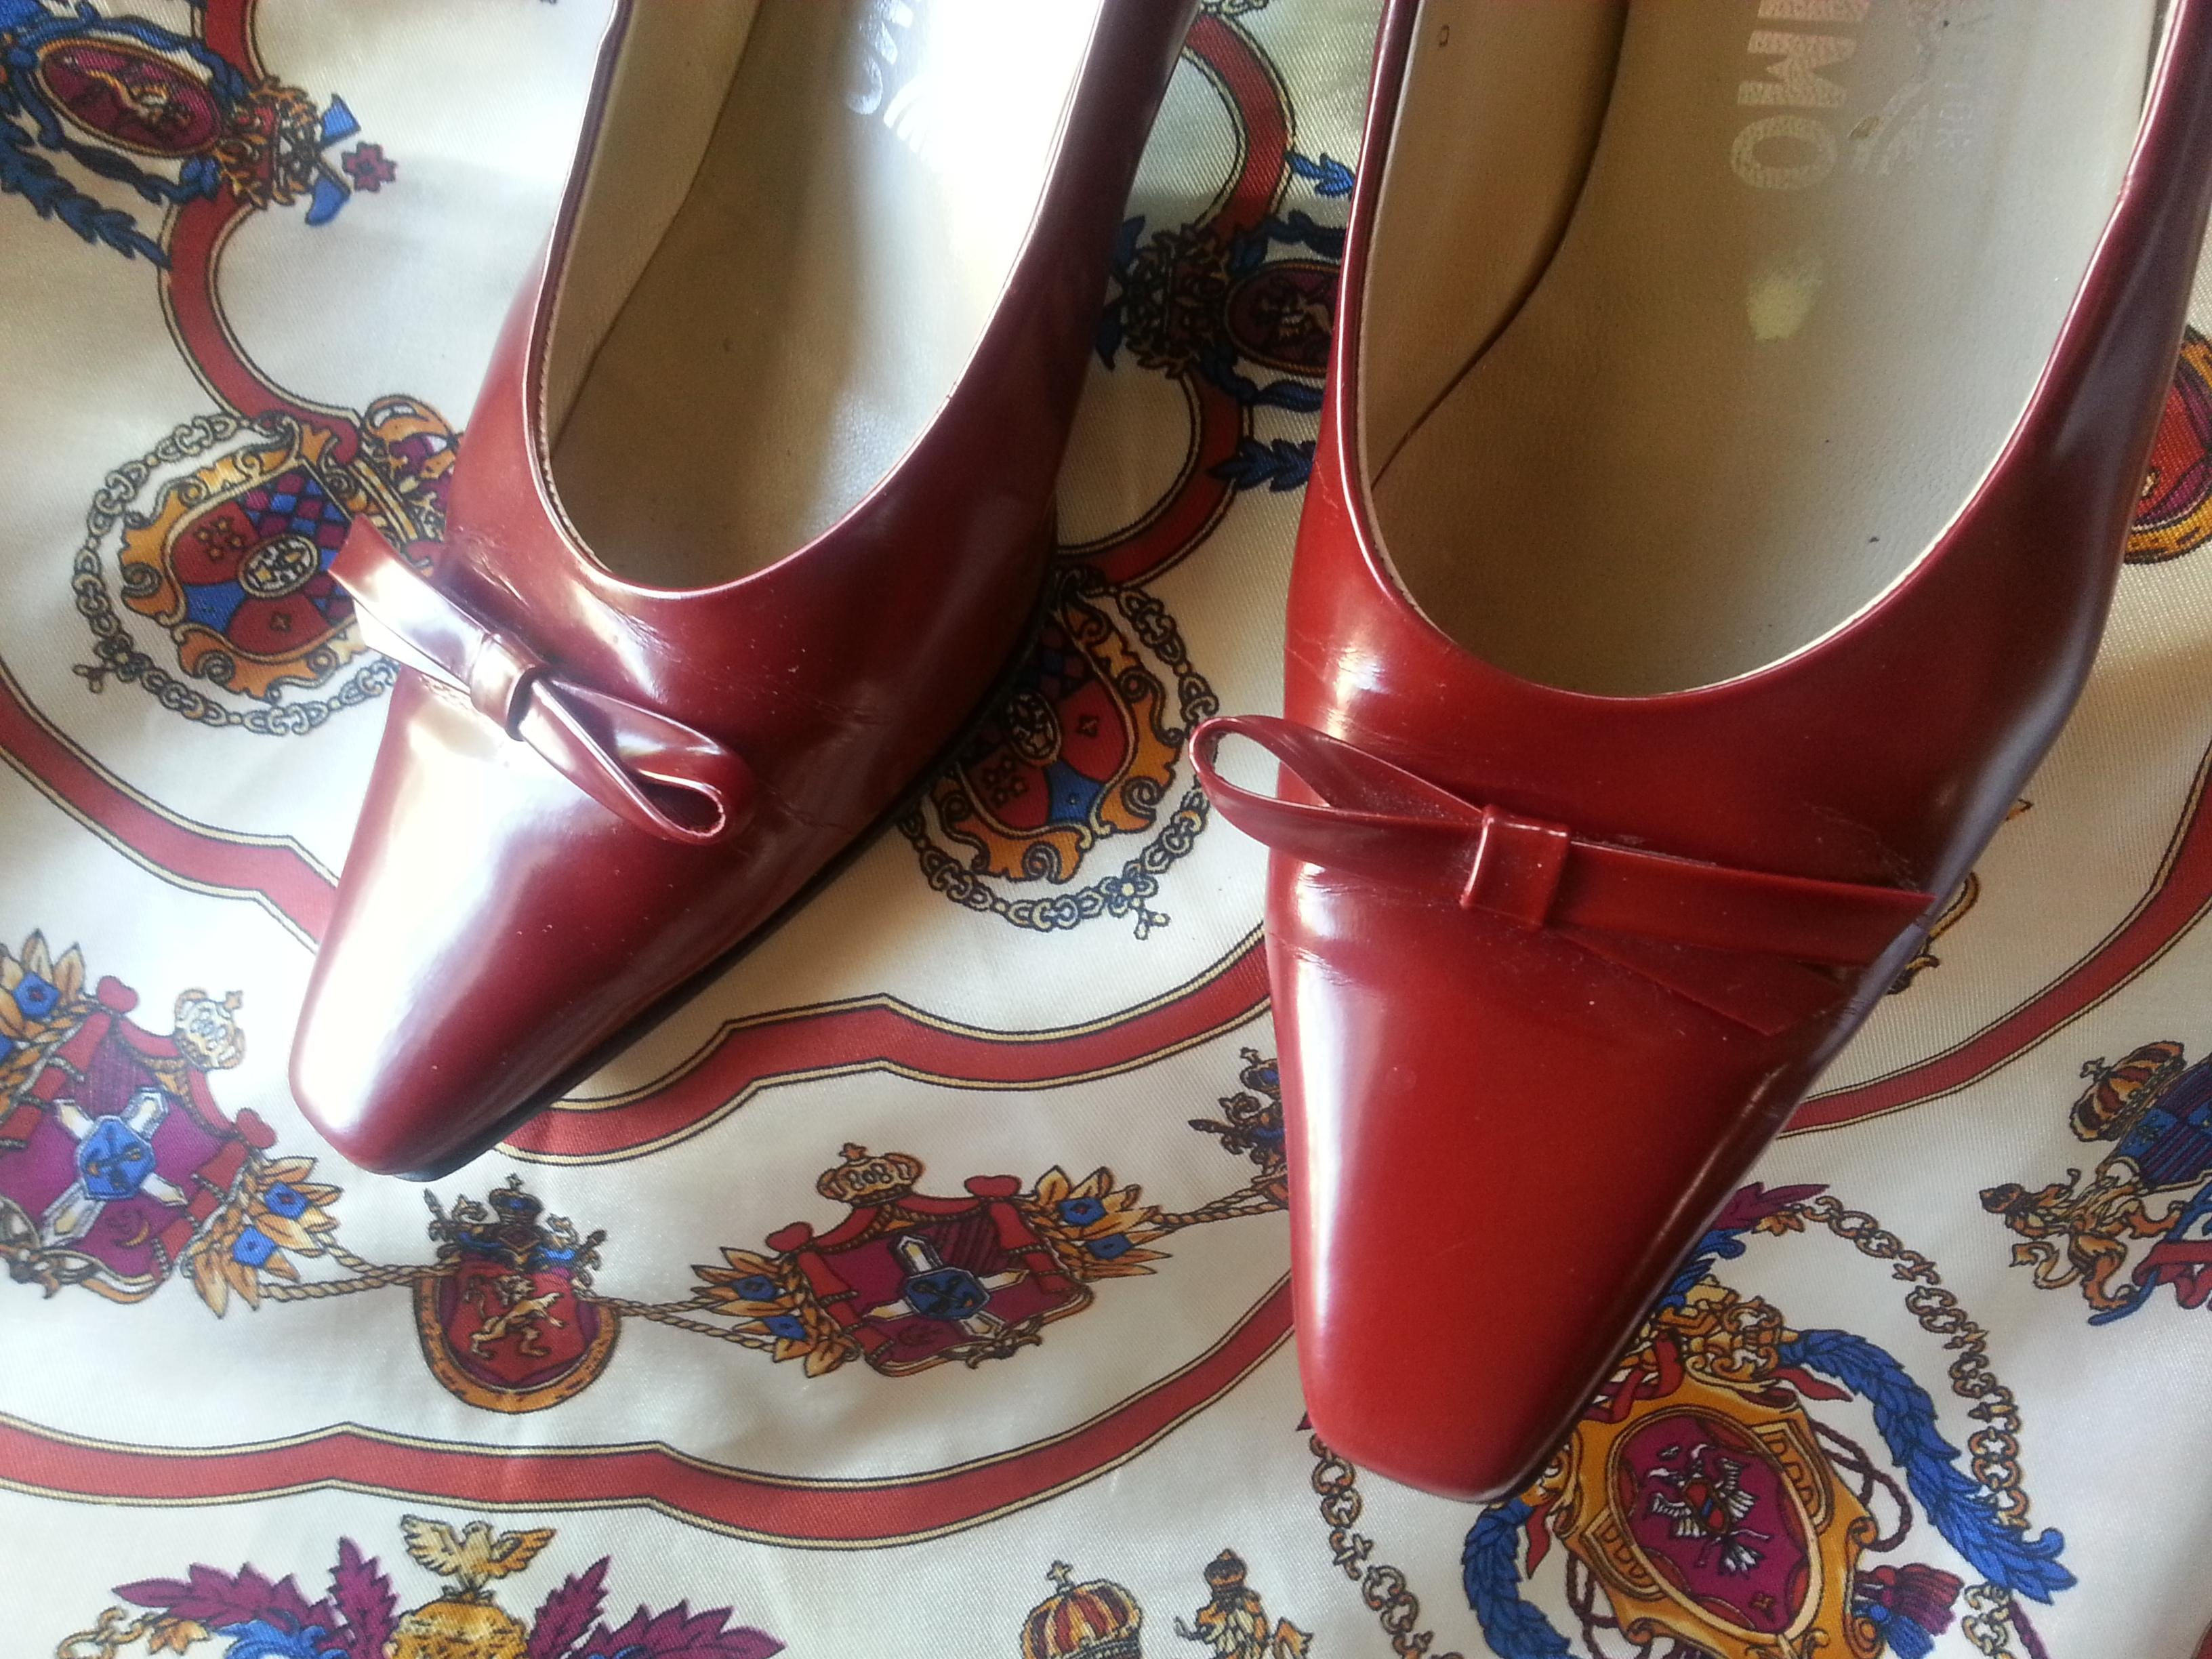 410dc7205299 ... B Salvatore Ferragamo Red Holiday Heels Pumps Size Size Size US 7  Regular (M